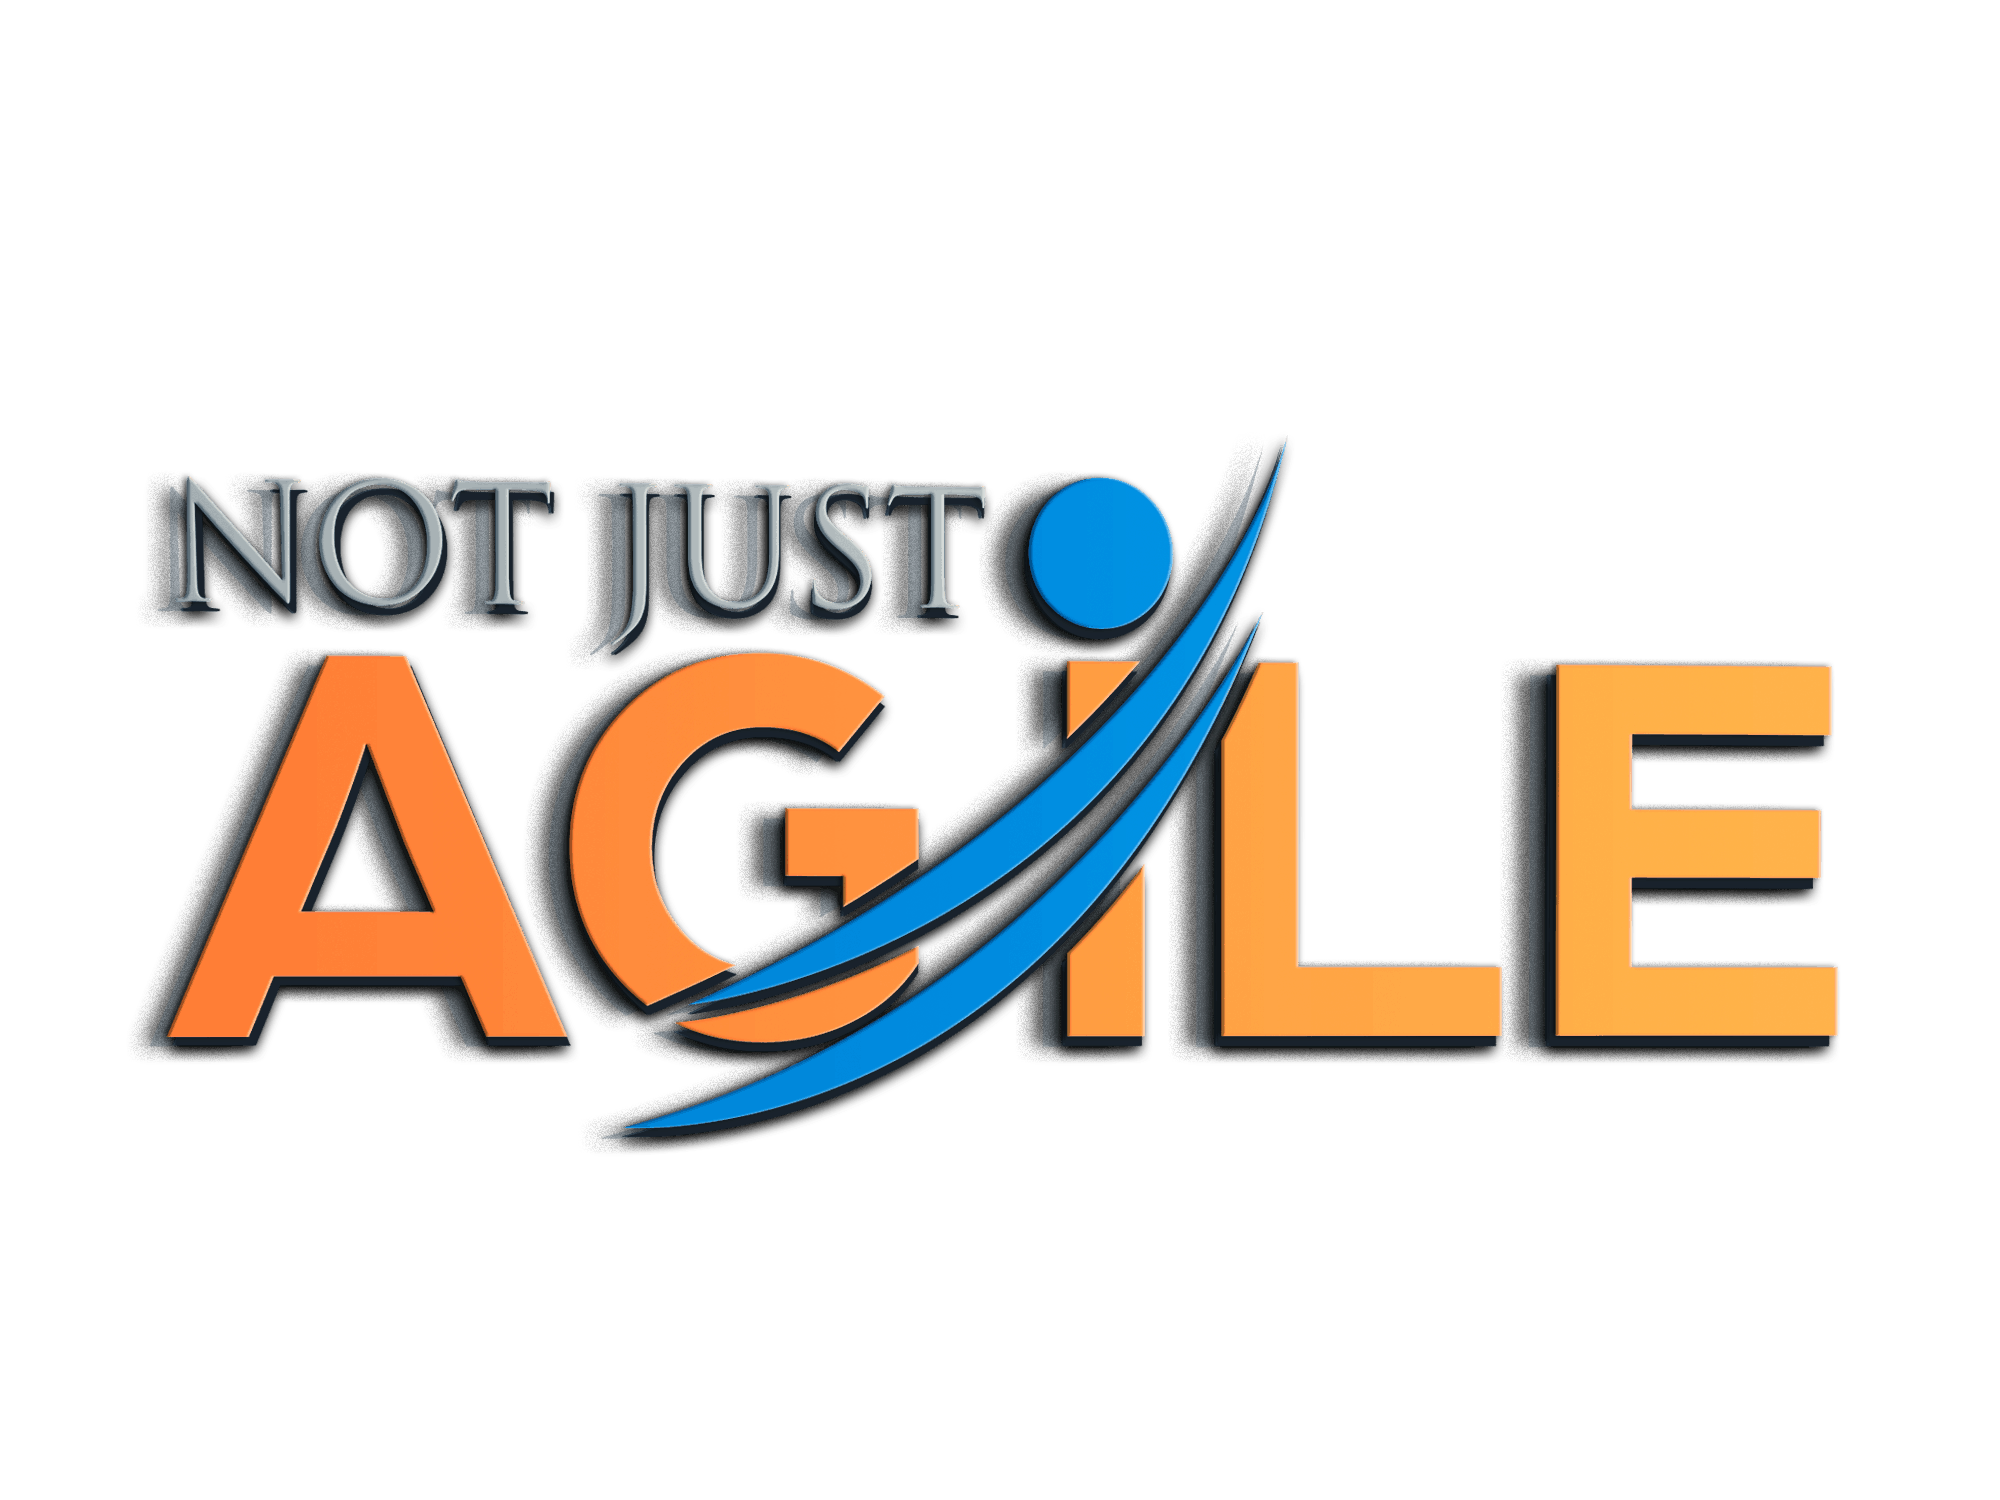 Not Just Agile logo